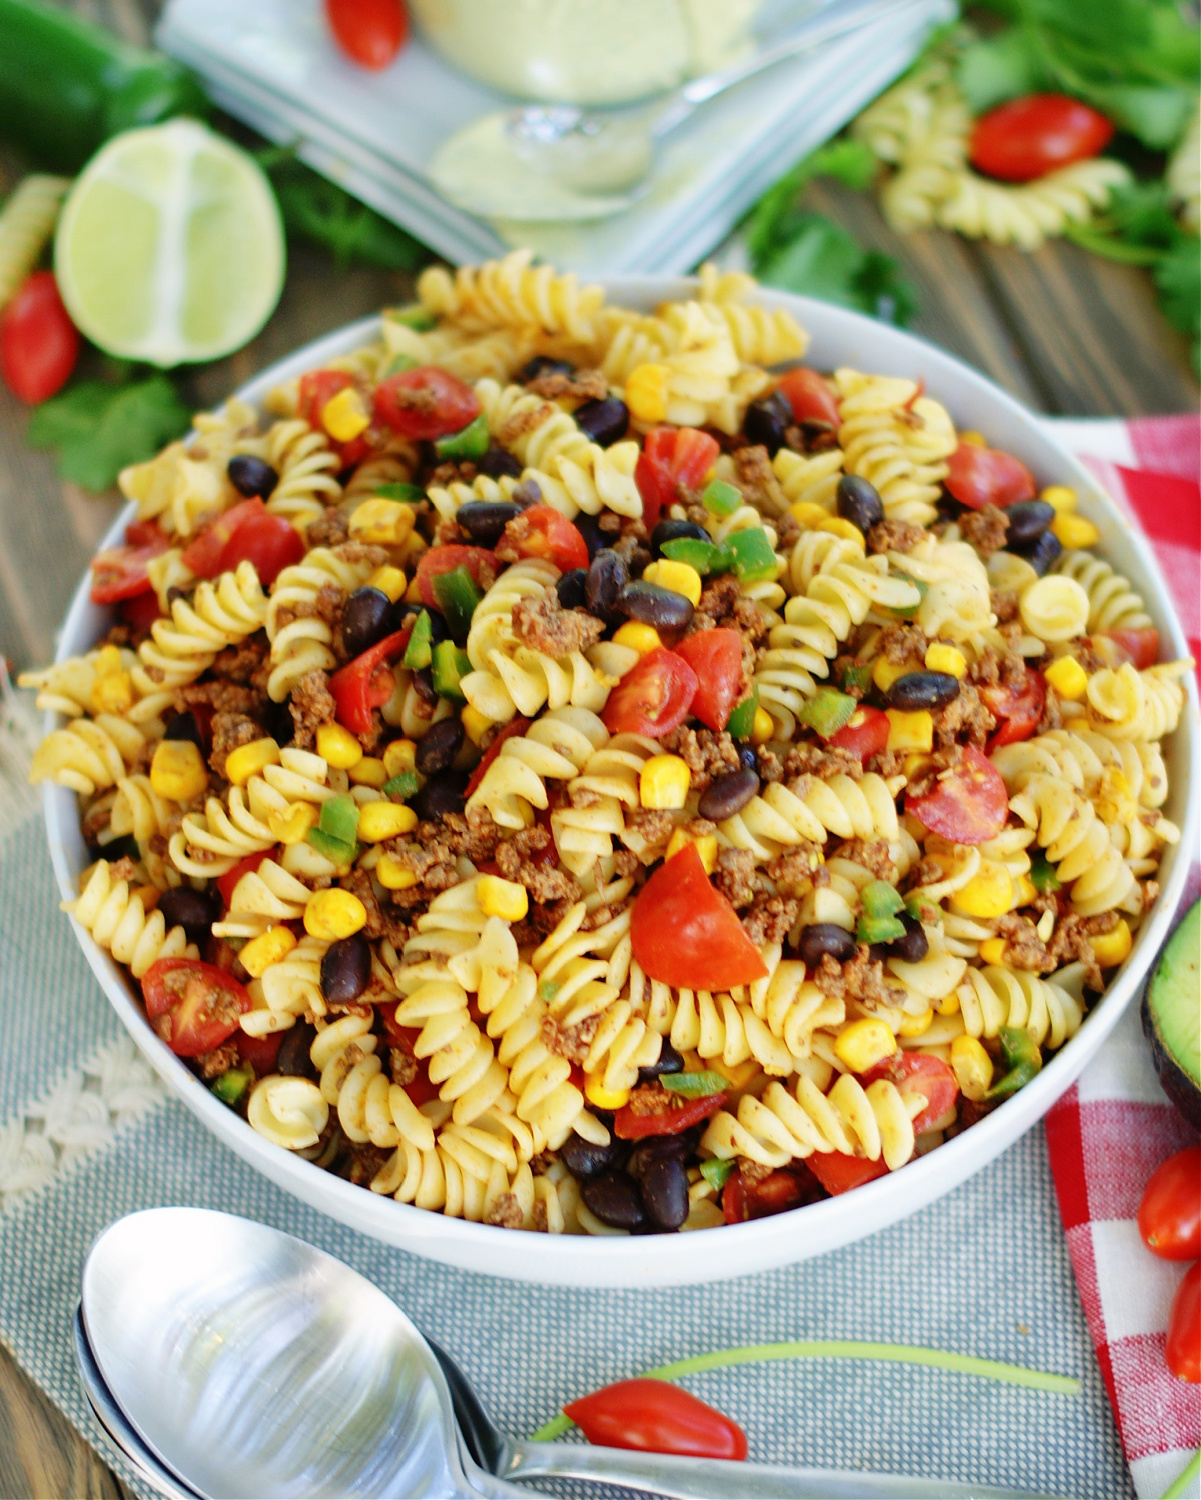 Toss the Taco Salad ingredients together before adding the dressing.